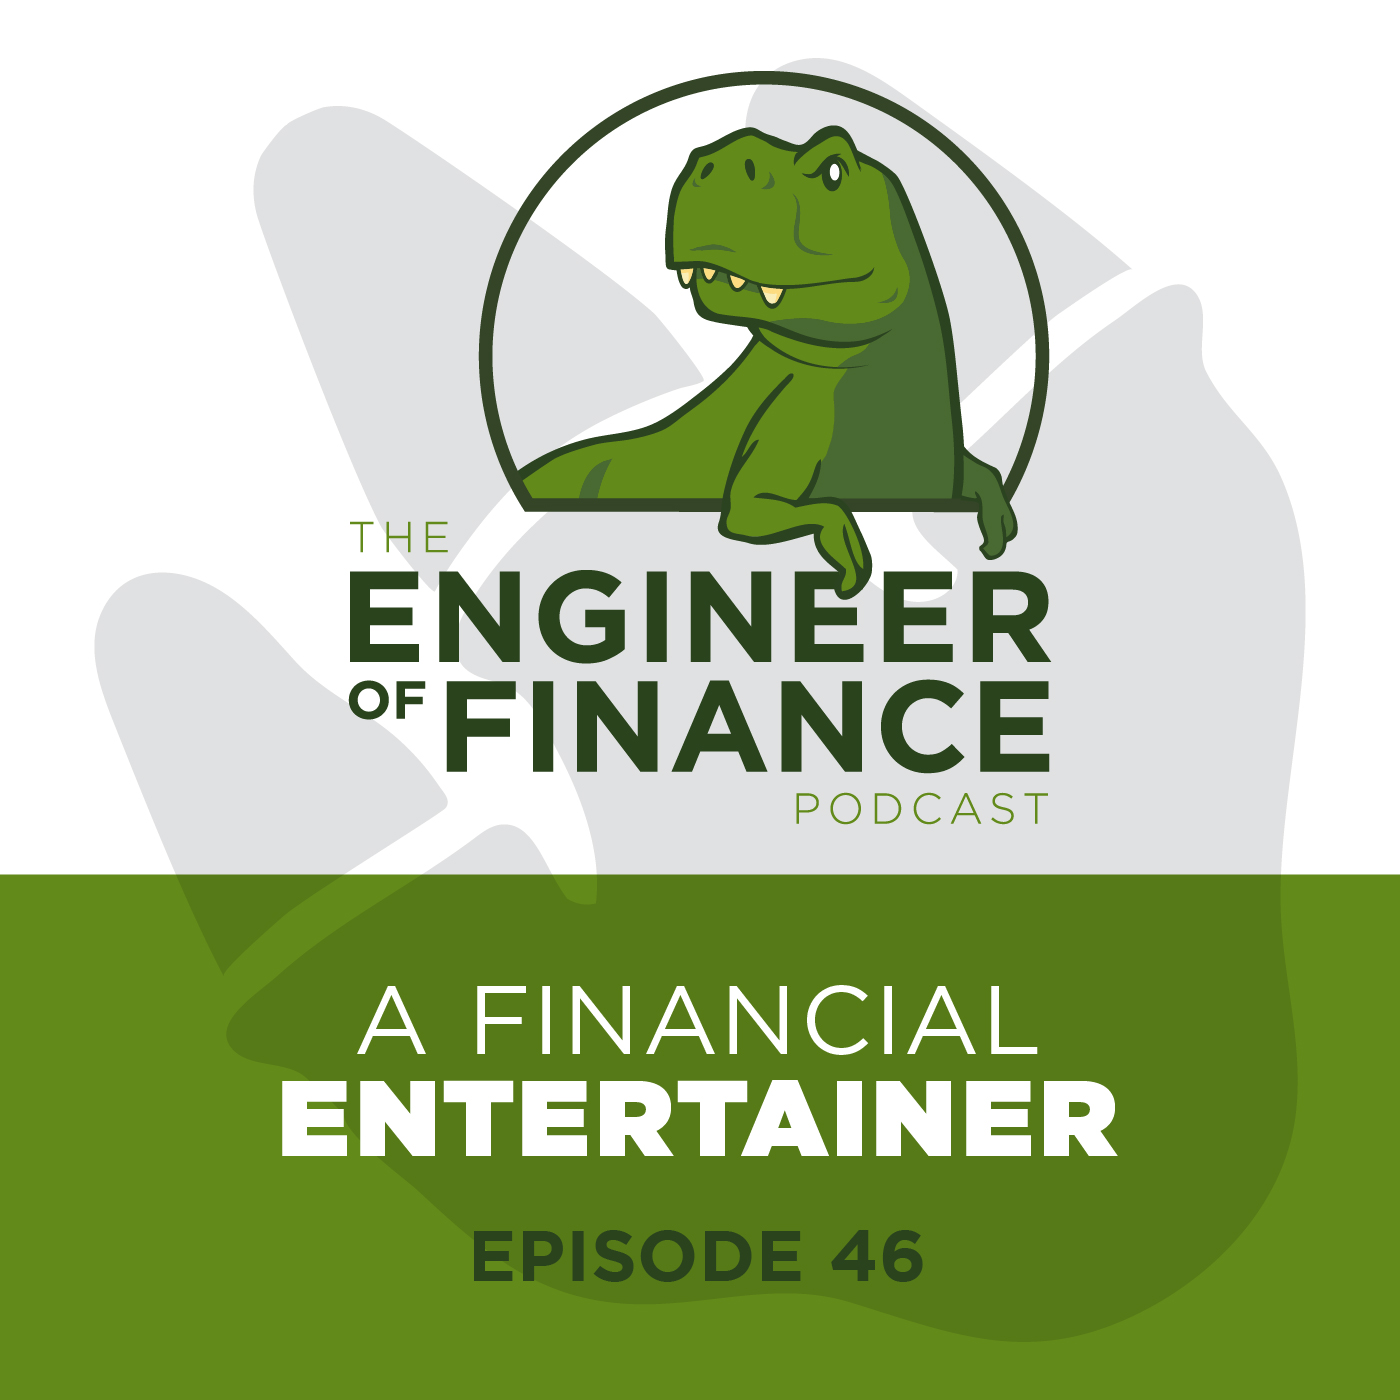 A Financial Entertainer – Episode 46